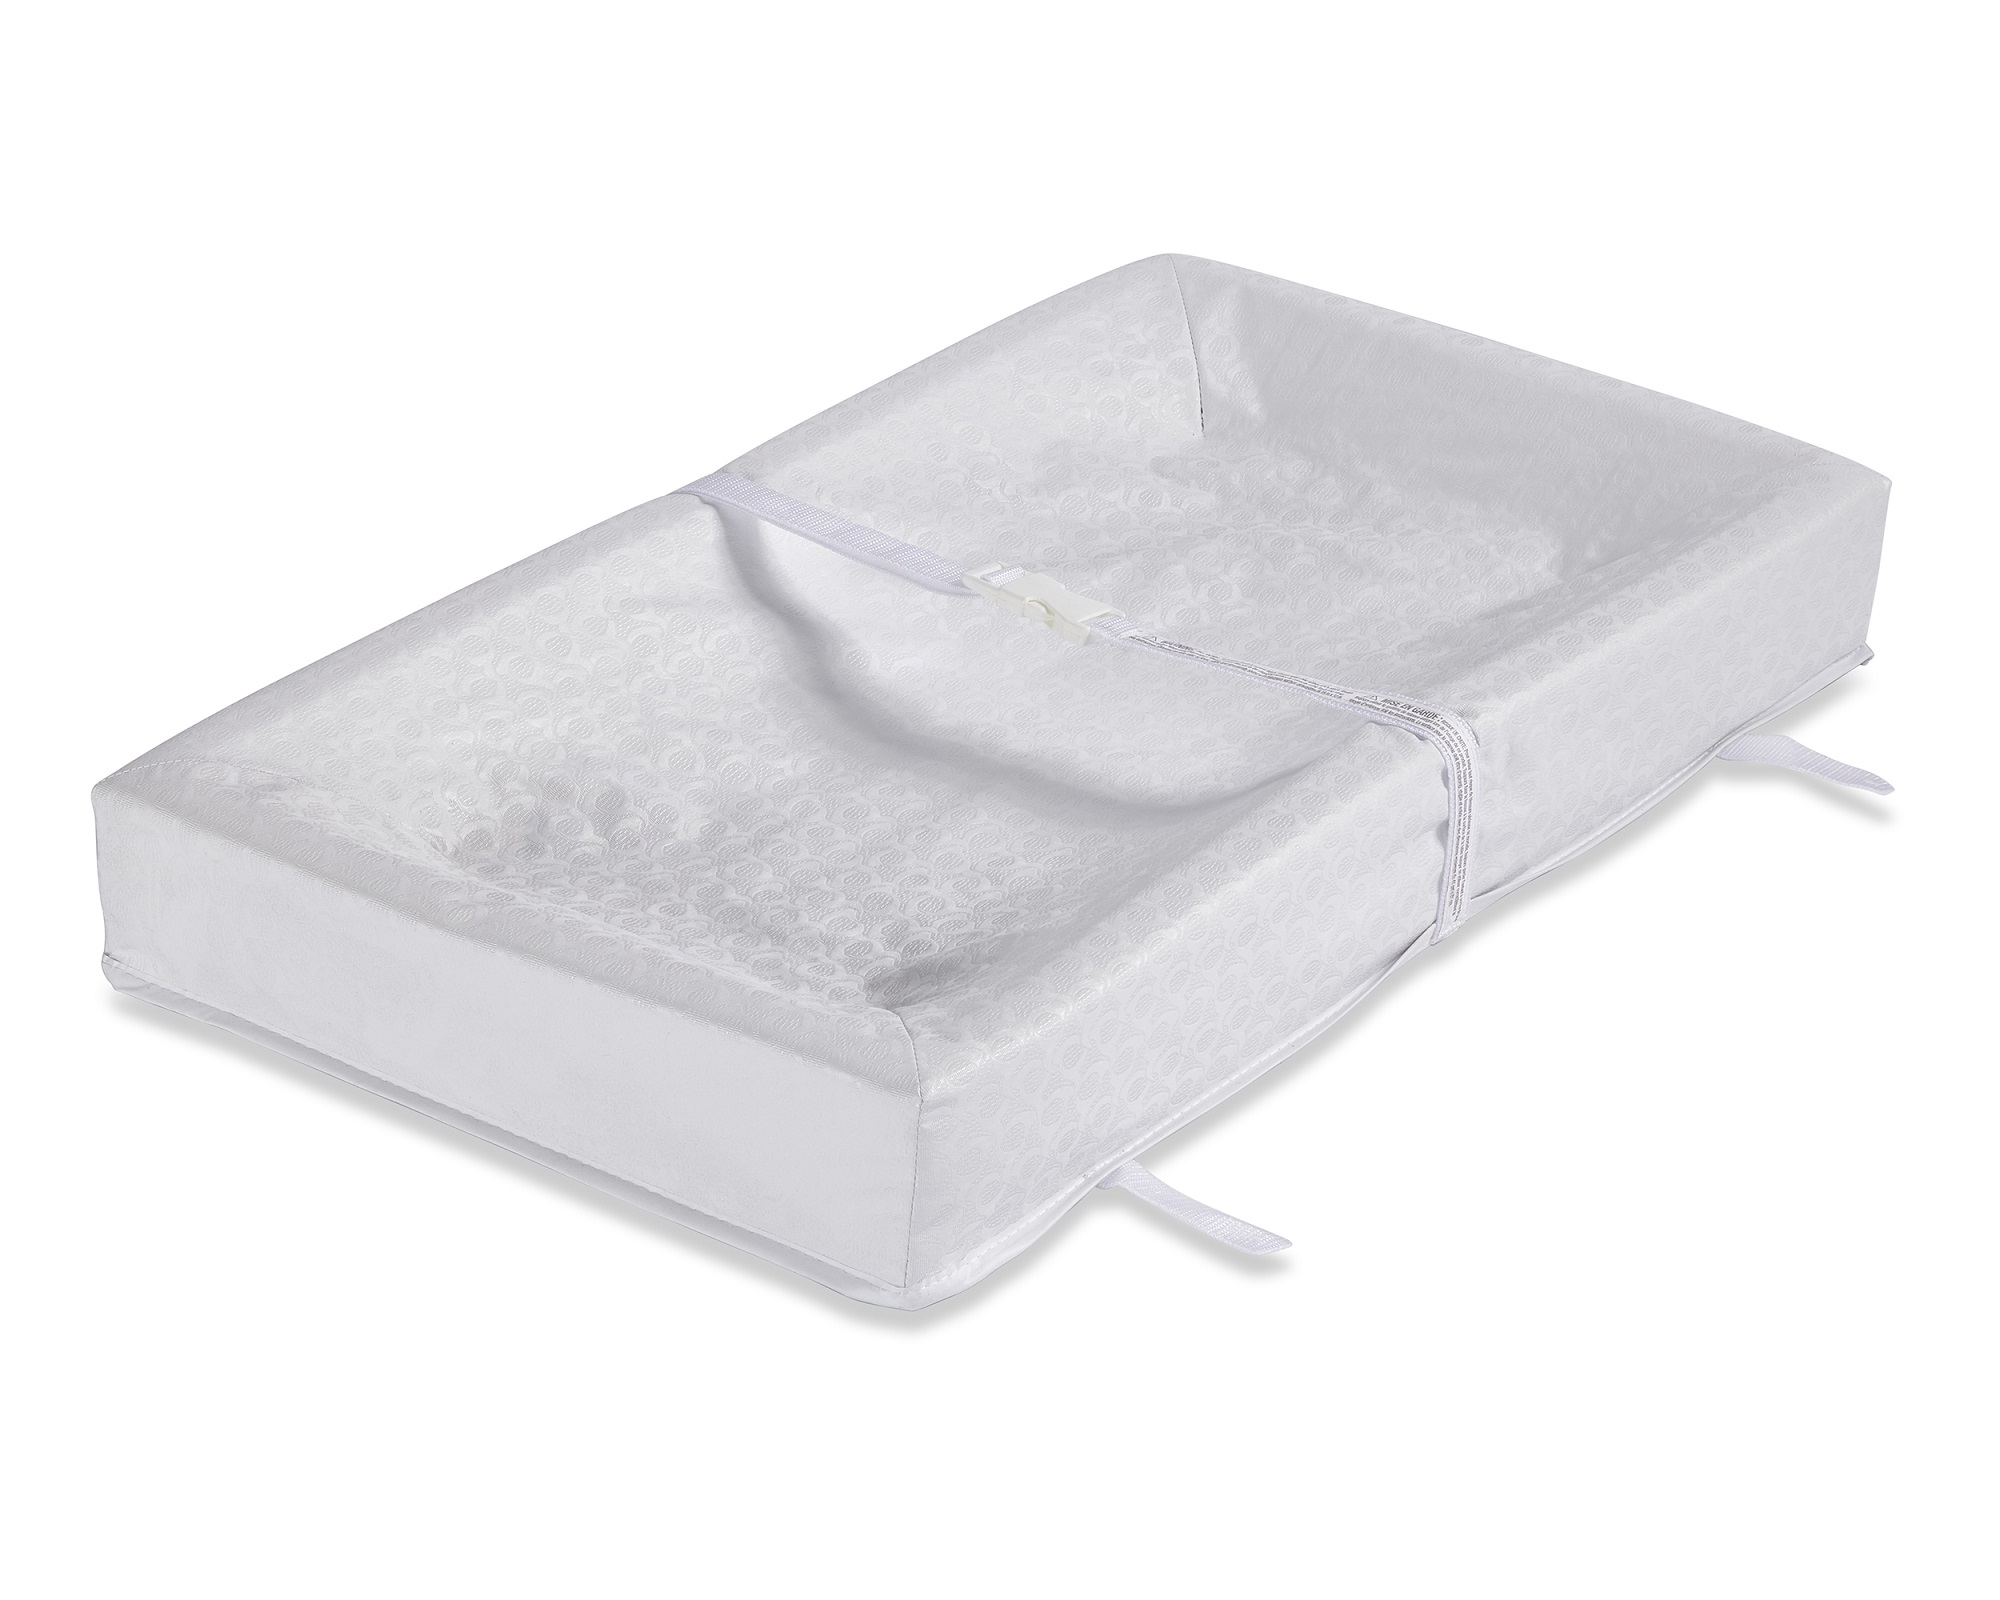 L.A. Baby 4-Sided Square-Corner Waterproof Changing Pad, Embossed by L.A. Baby